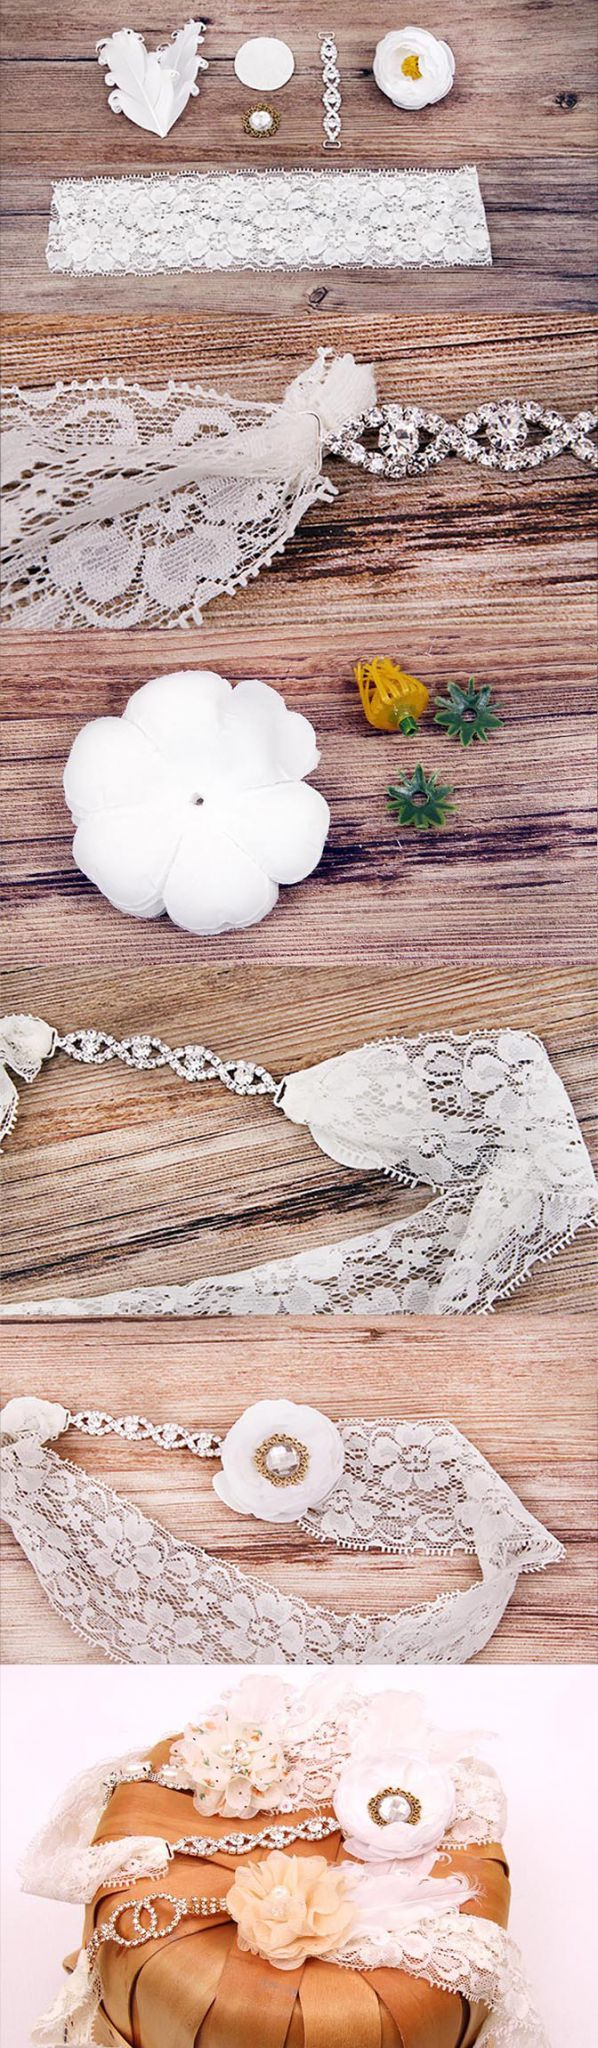 DIY Bridal Gerter Make Your Own Custom Wedding Garter To Match Your Style